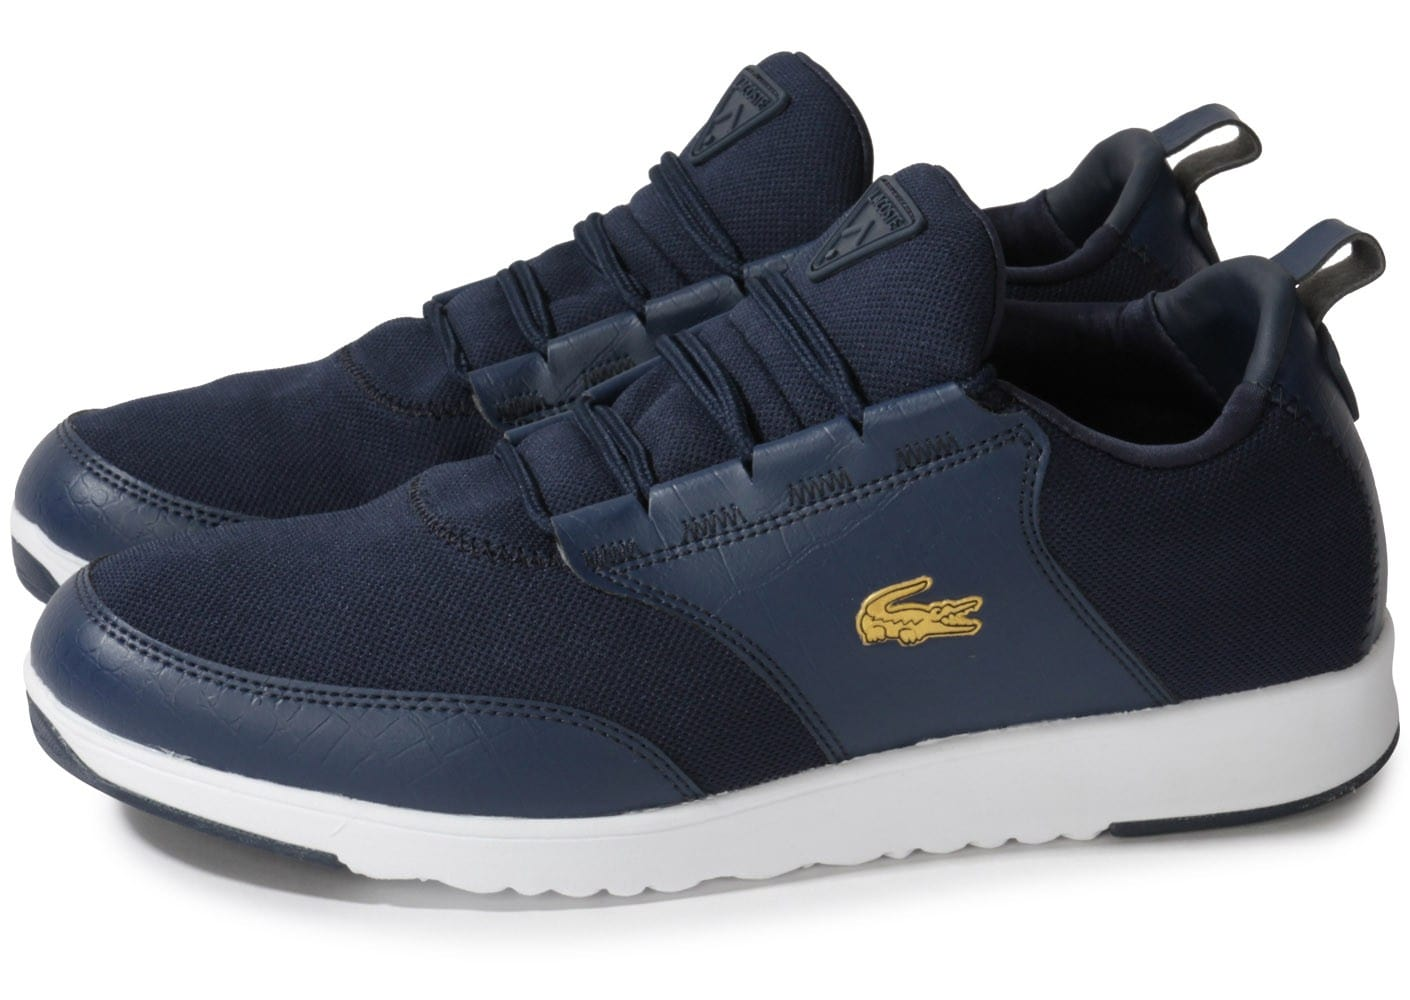 7a5379ceb9 chaussure lacoste homme light,Deviation Blanche. Lacoste